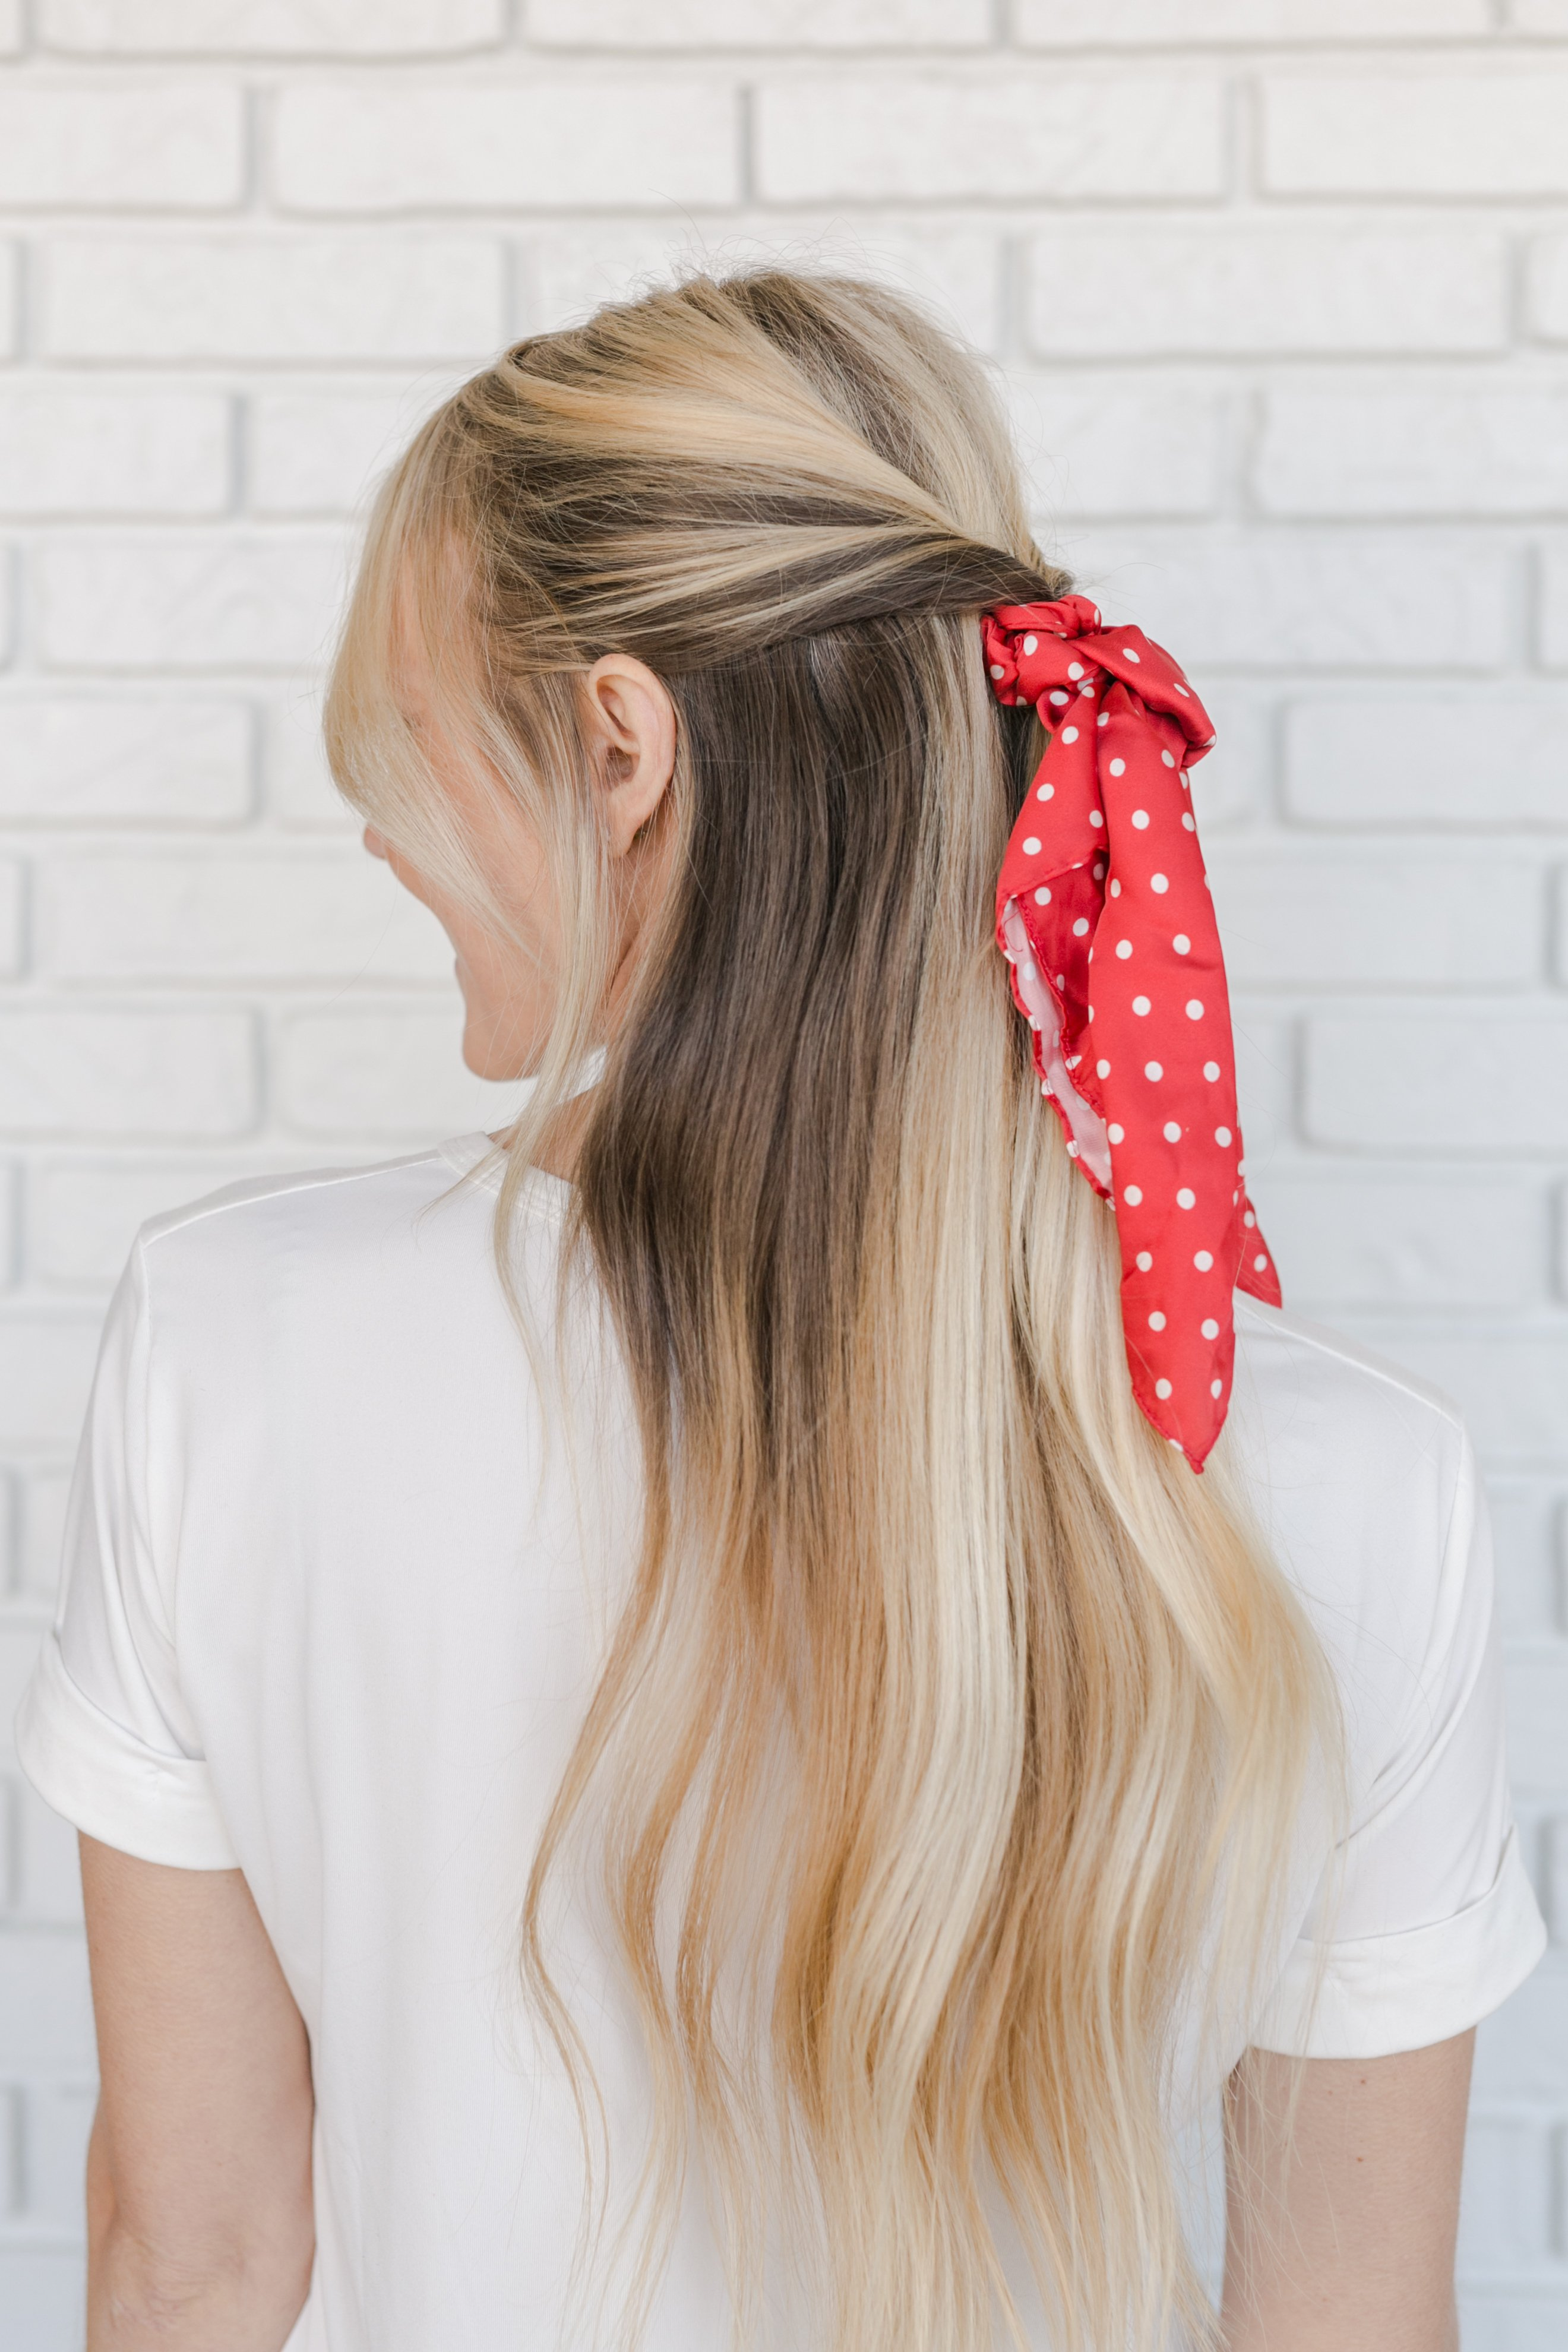 5 Ways to Wear The Scrunchie Trend